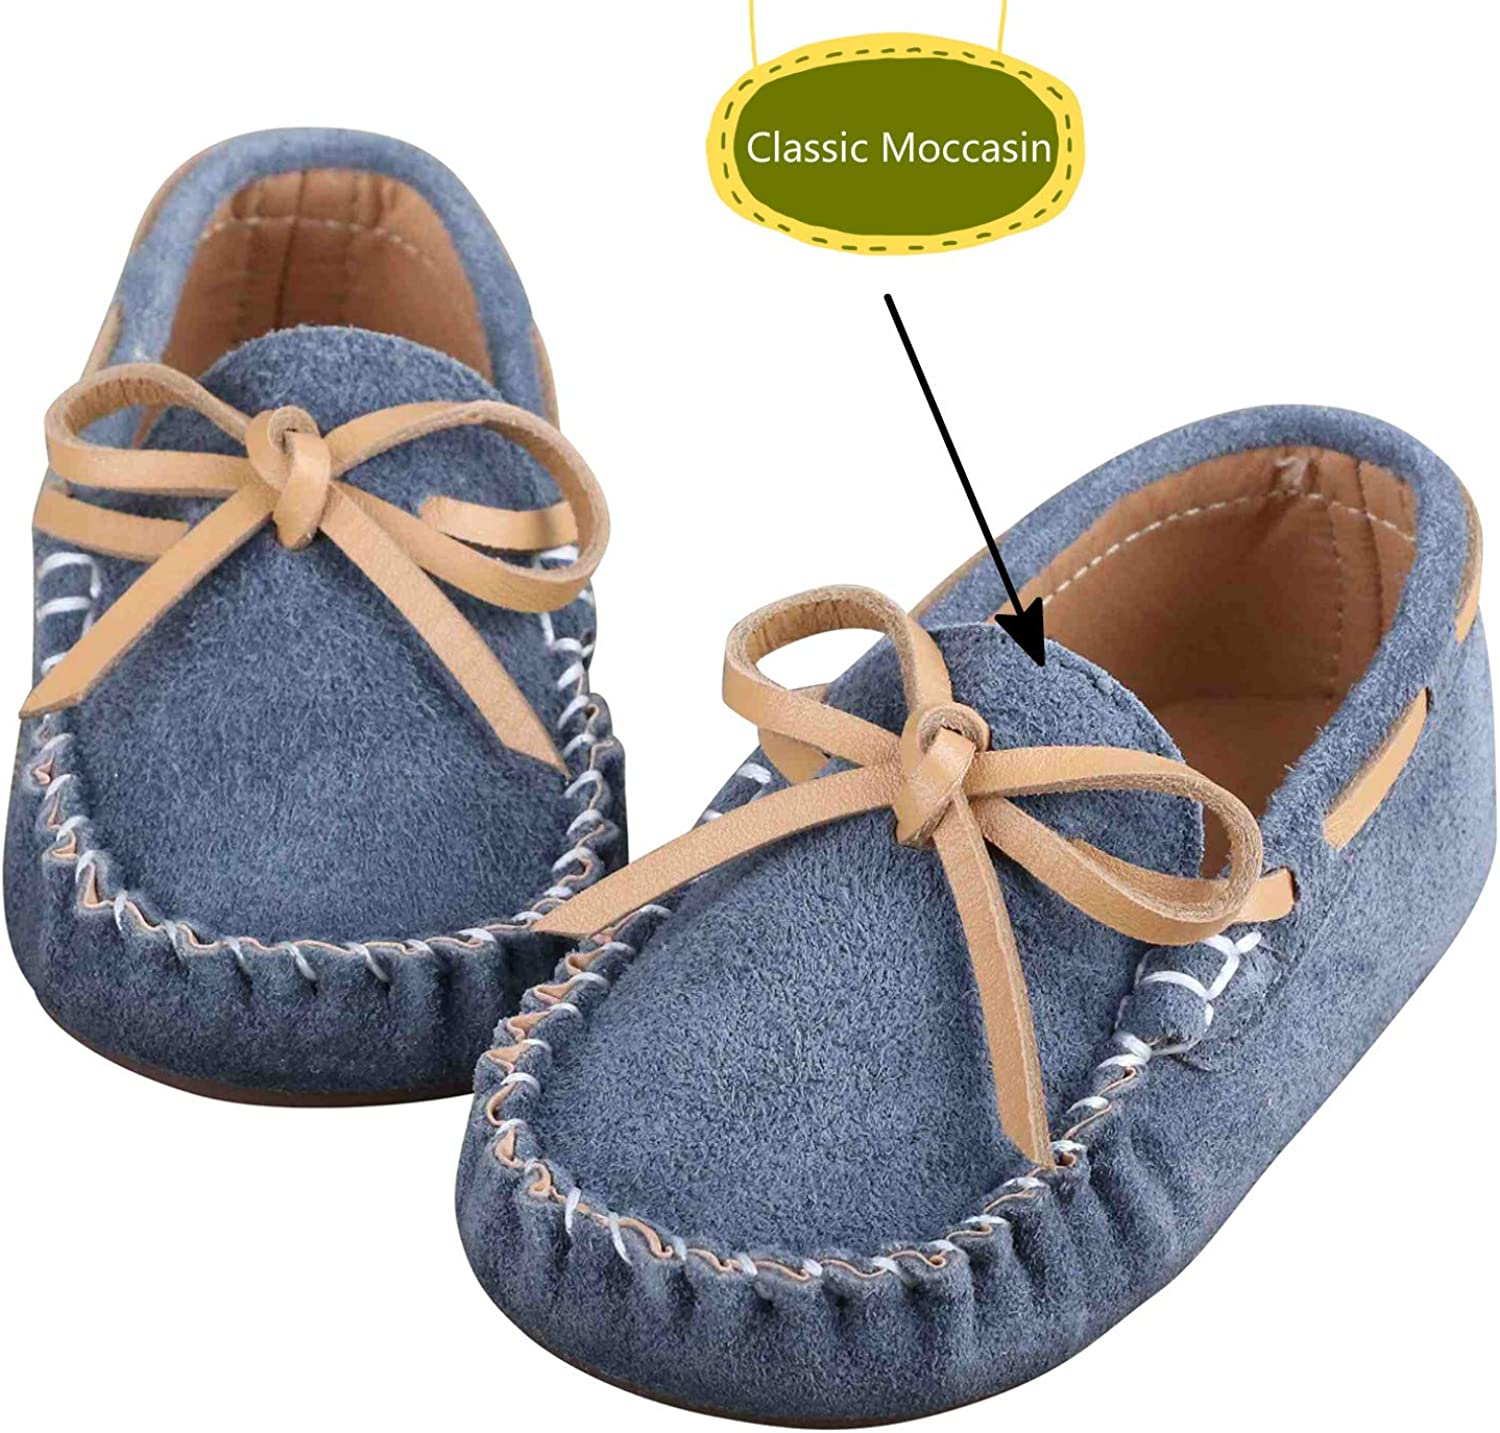 Toddler Boys Girls Suede Moccasin Loafers Slip on Flats Boat Shoes Soft Indoor Outdoor Slippers